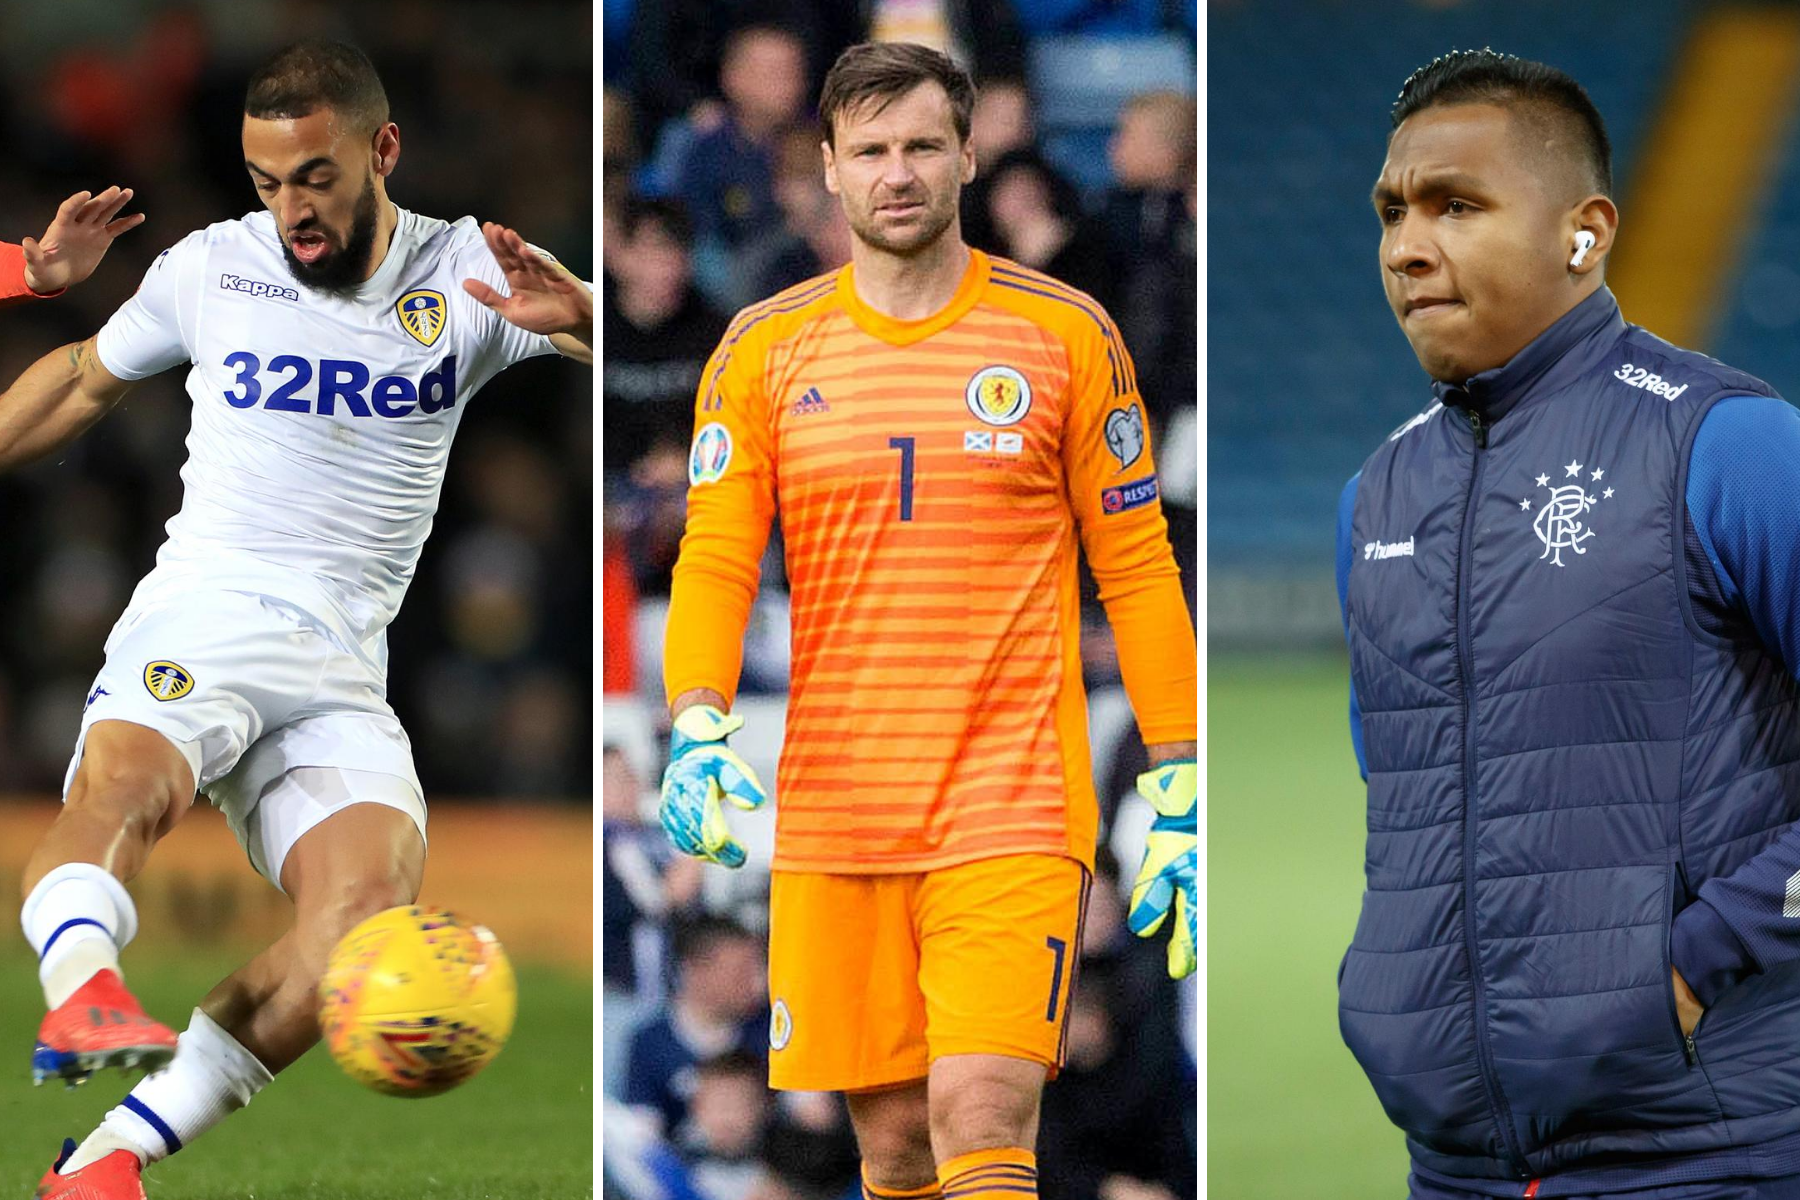 Scottish transfer news LIVE: Kemar Roofe to Rangers 'imminent', Morelos latest and and Marshall wants Celtic return